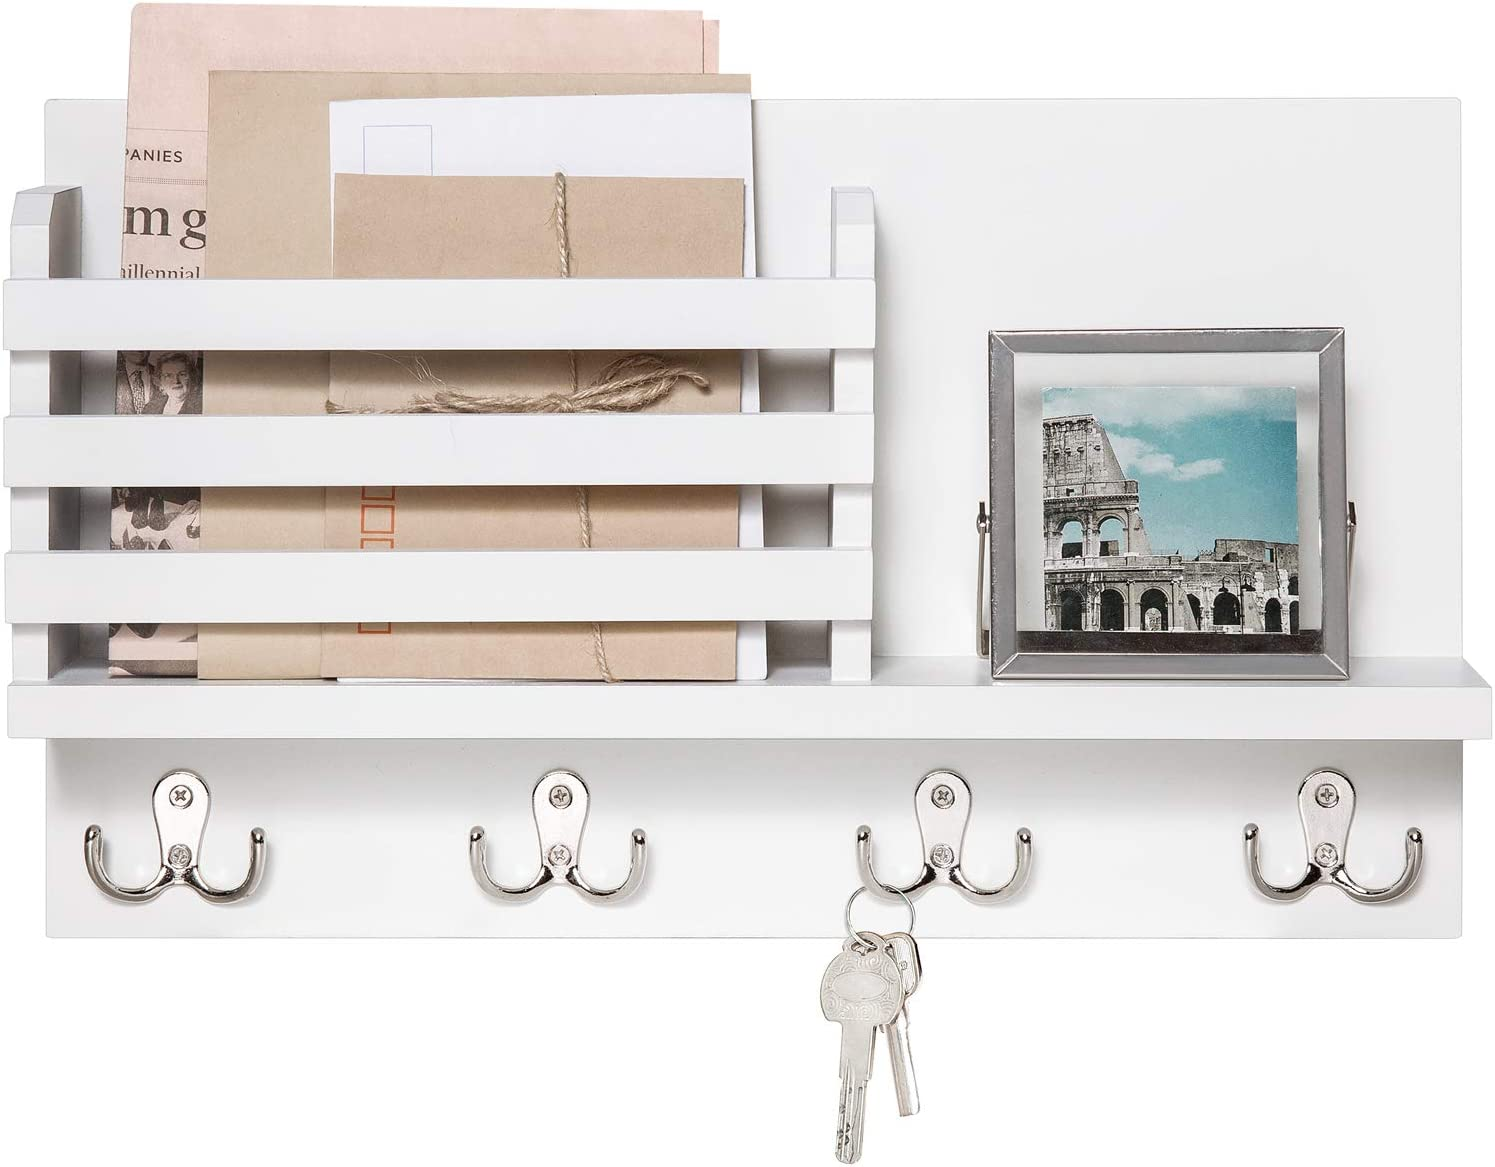 Dahey Wall Mounted Mail Holder Wooden Mail Sorter Organizer with 4 Double Key Hooks and A Floating Shelf Rustic Home Decor for Entryway or Mudroom,White